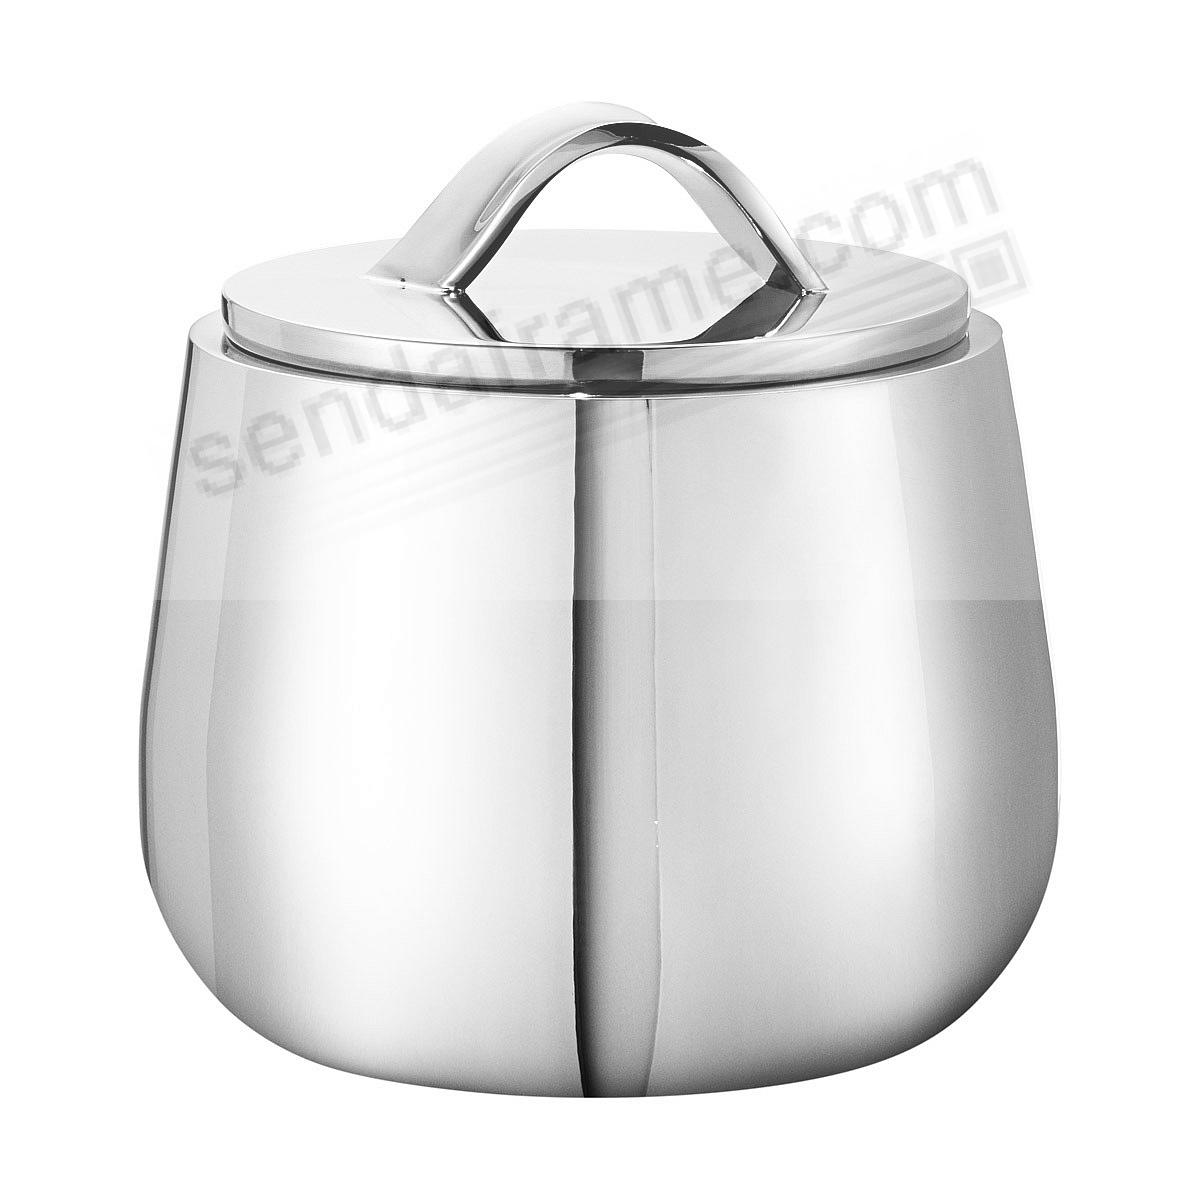 The HELIX Bonbonniere Stainless Steel Sugar Bowl by Georg Jensen®